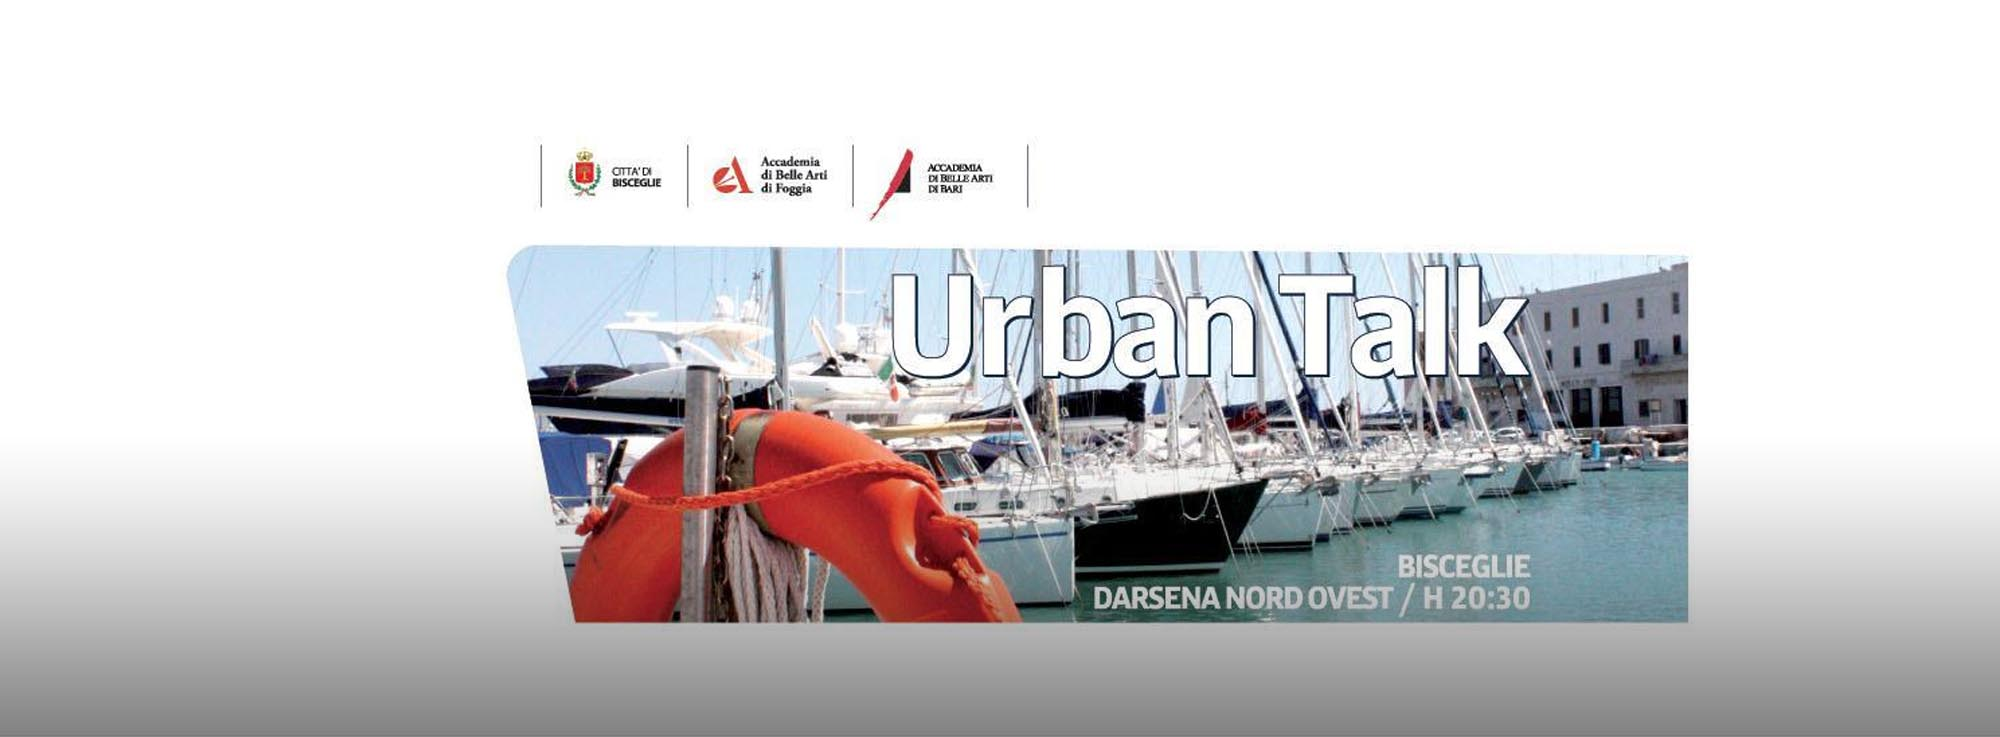 Bisceglie: Urban Talk